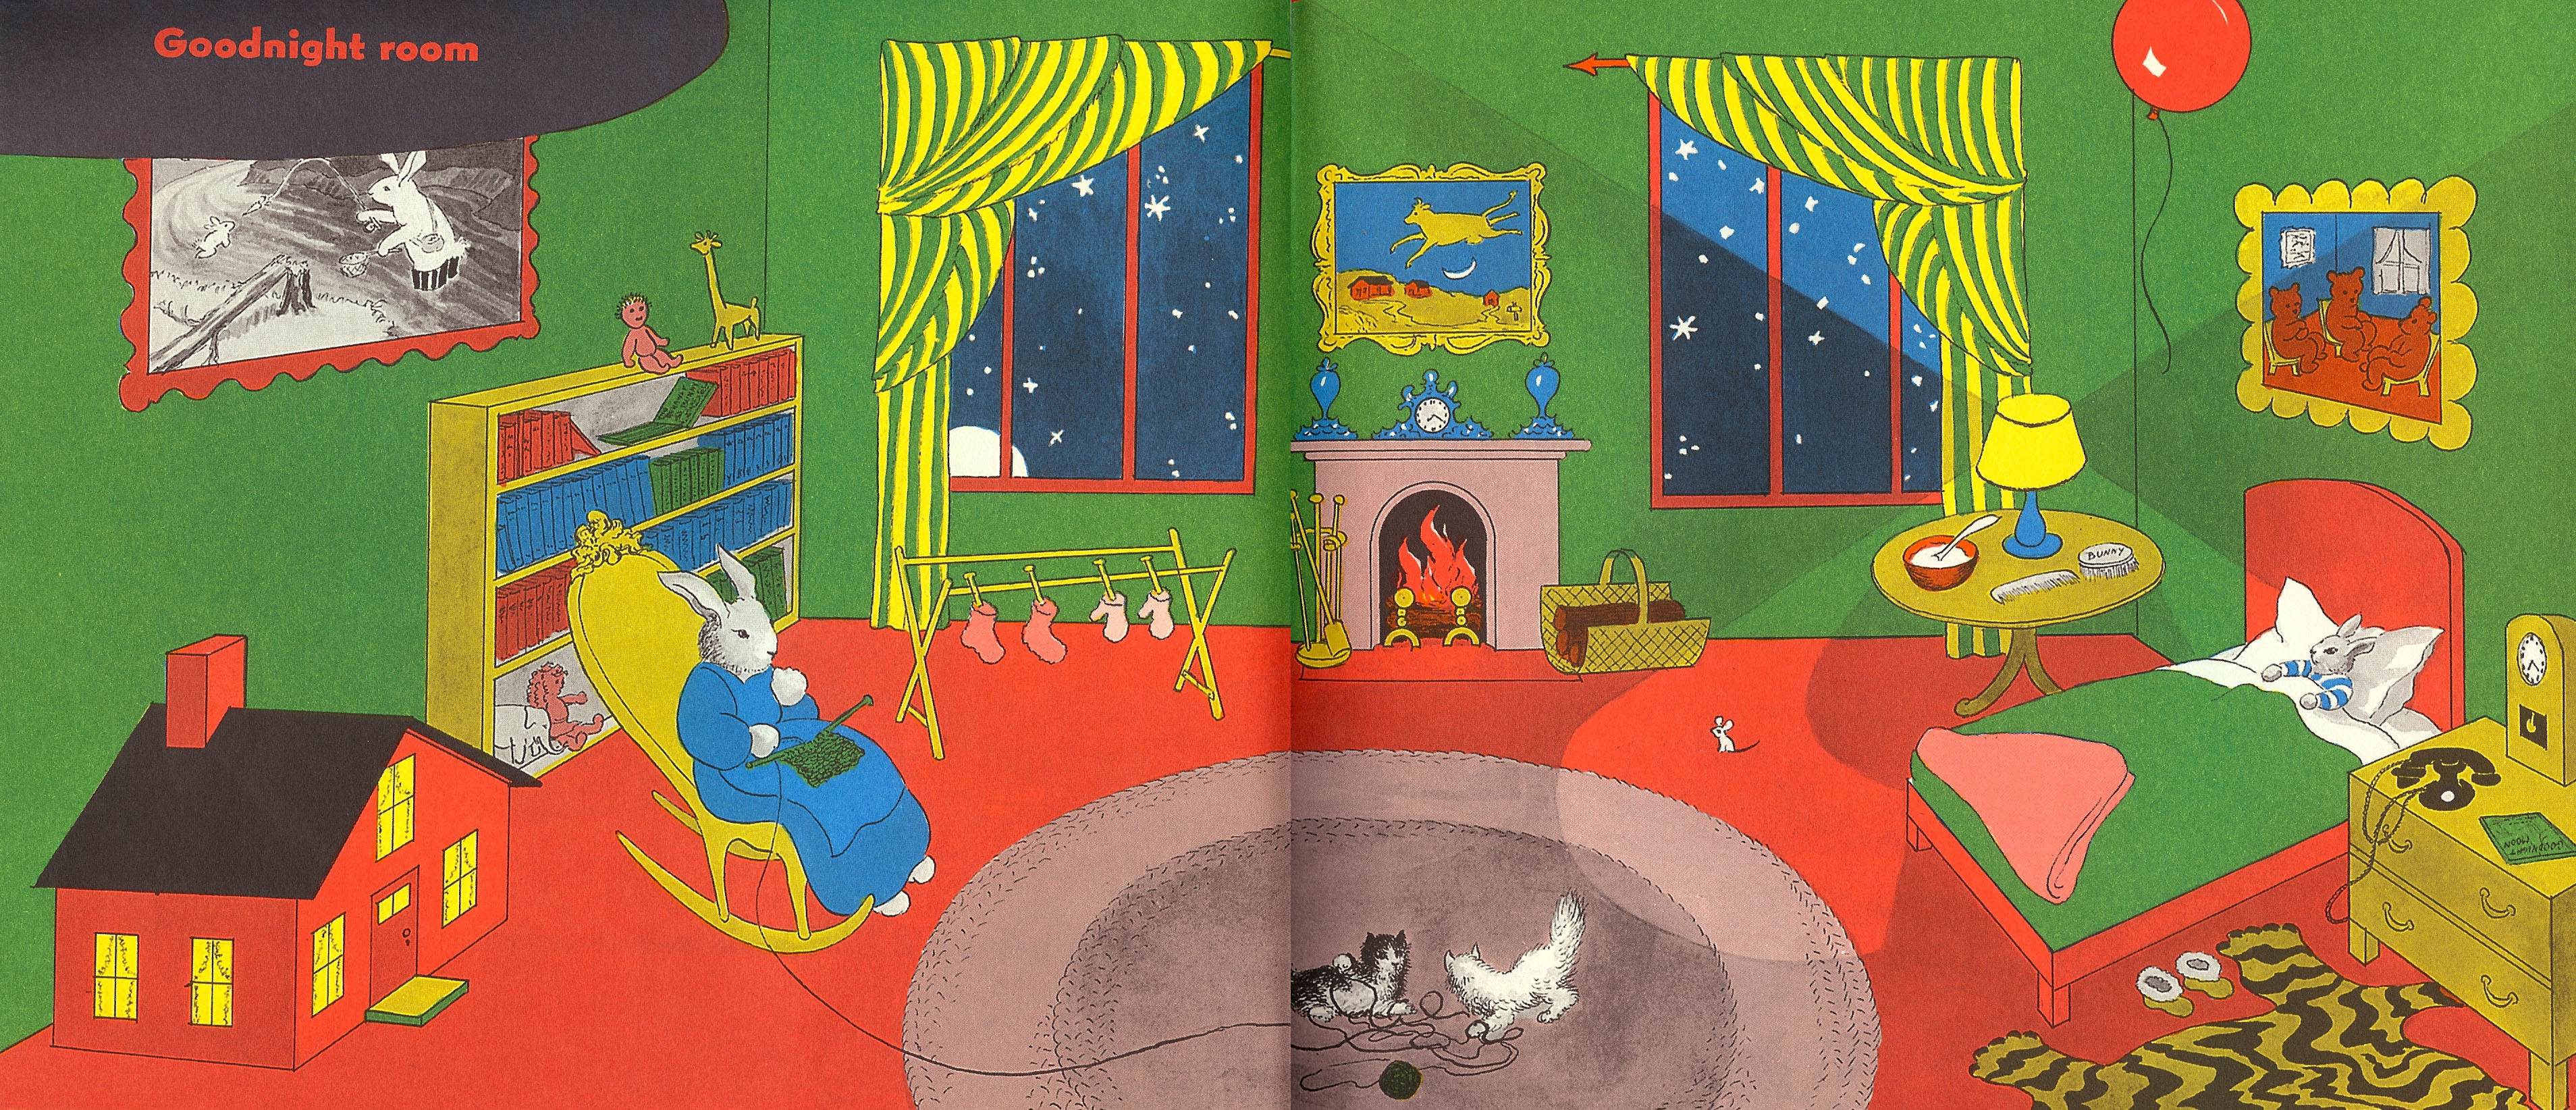 goodnight-moon-two-page